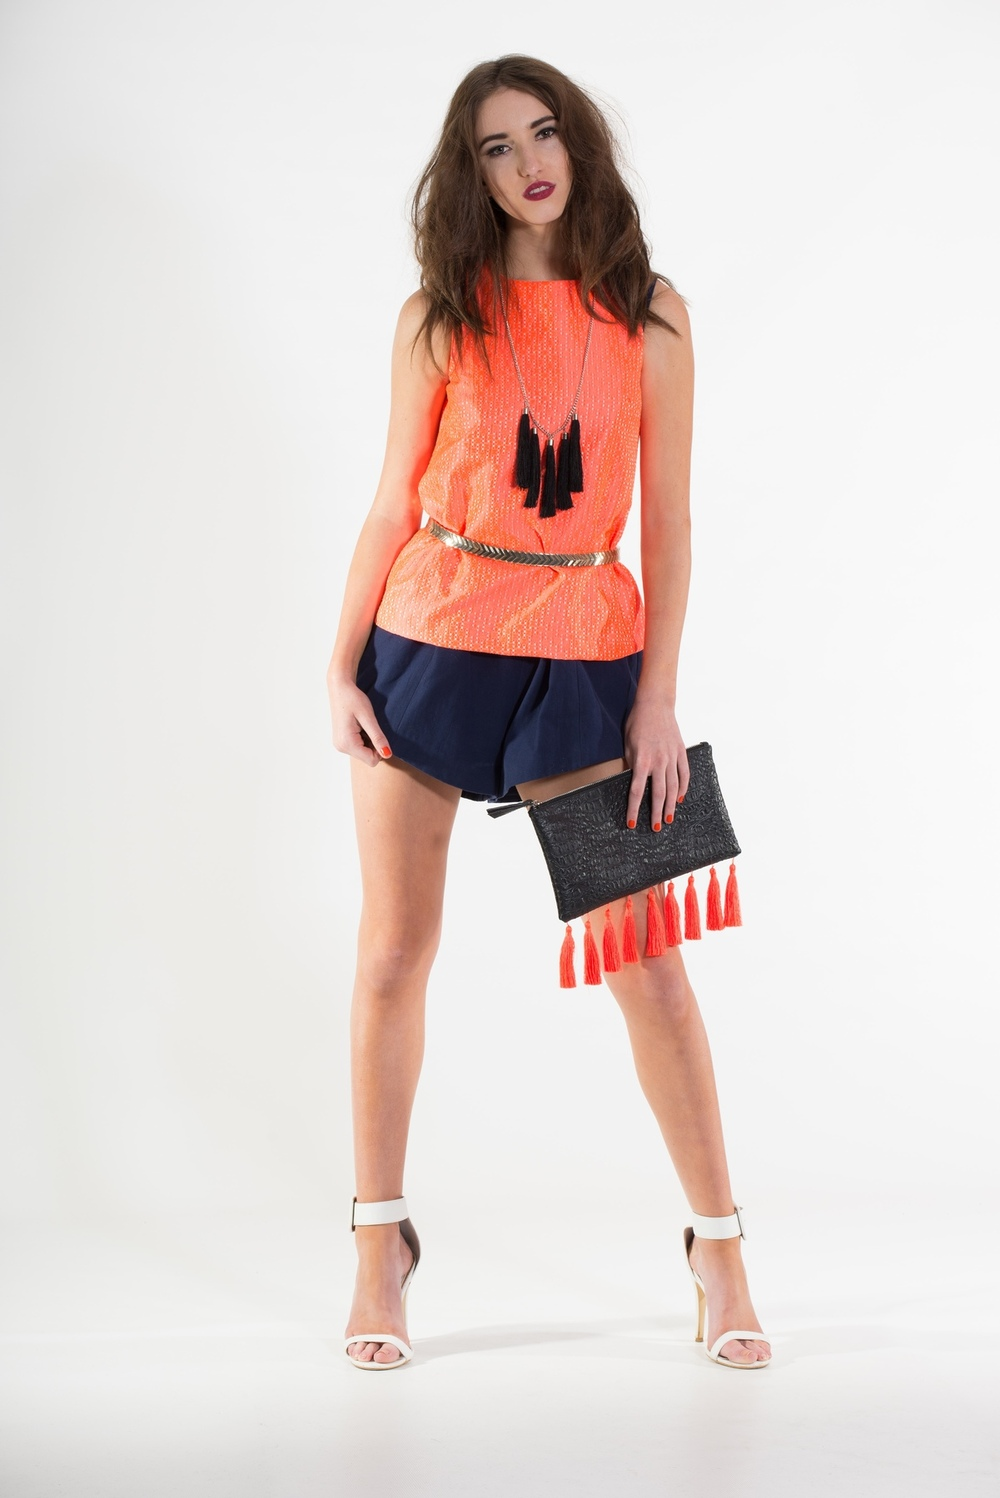 Ally Dunlop Stylist - Spring/Summer Lookbook